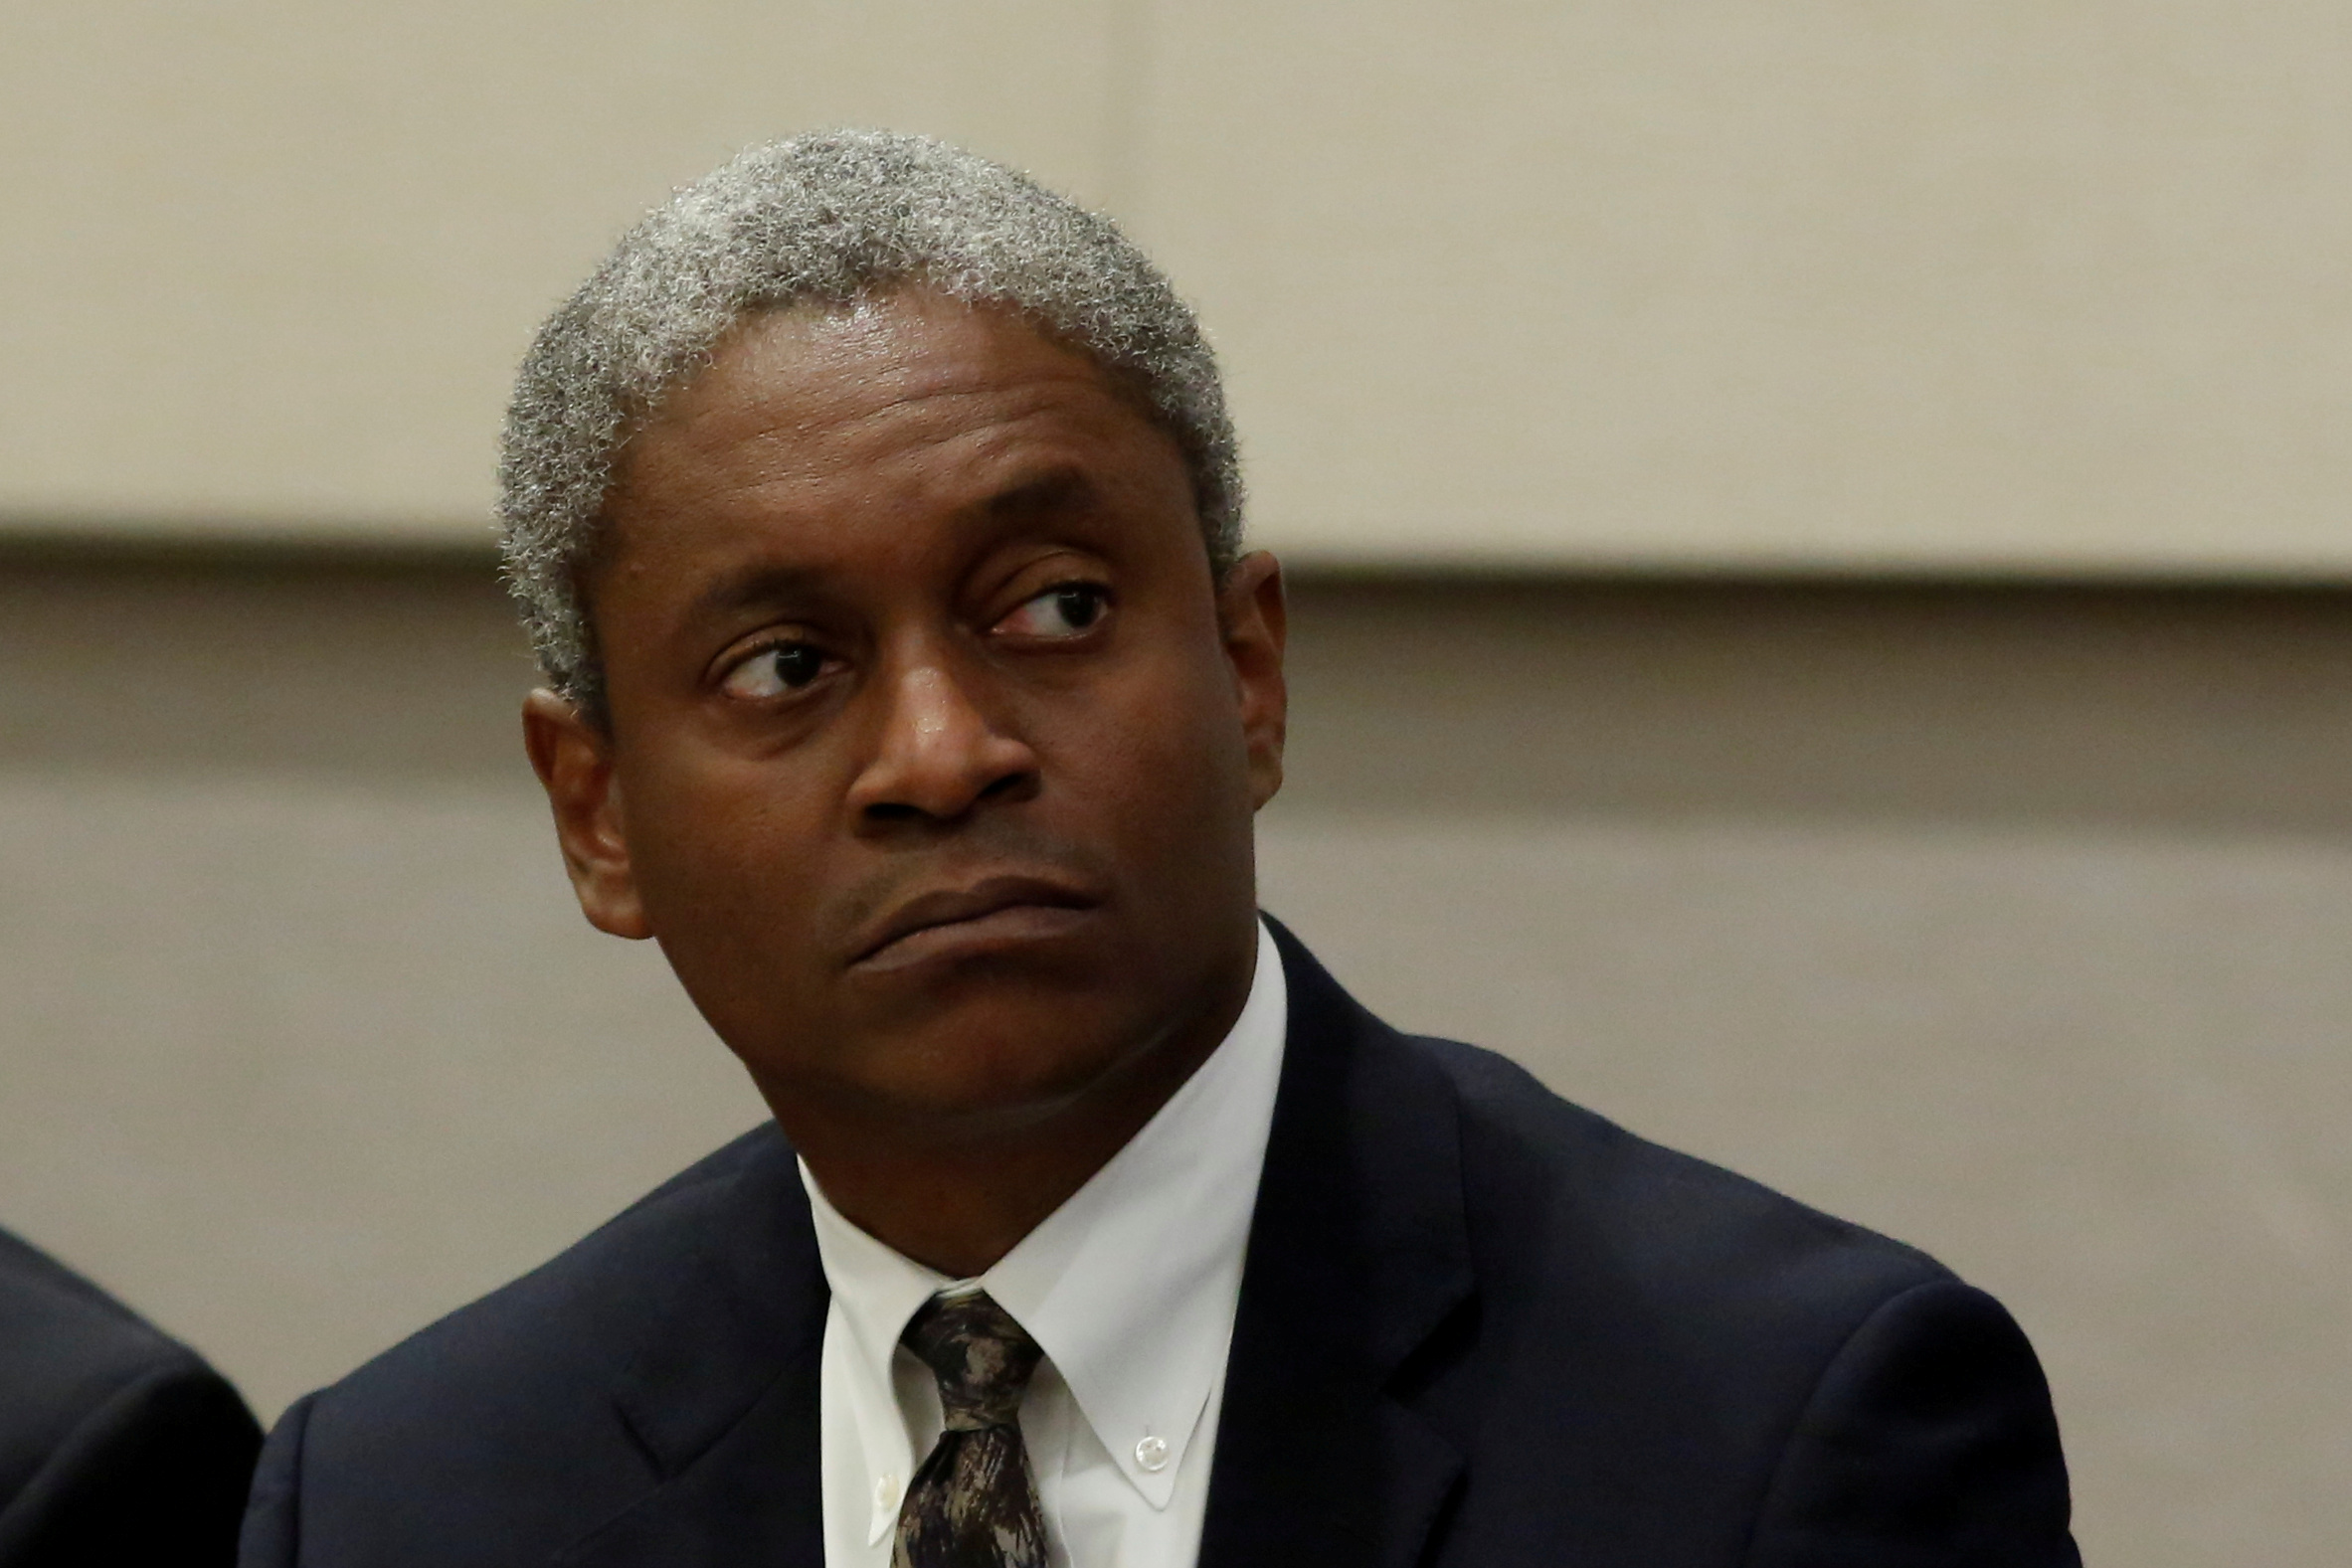 Atlanta Fed's Bostic says not expecting imminent interest rate cut: CNBC